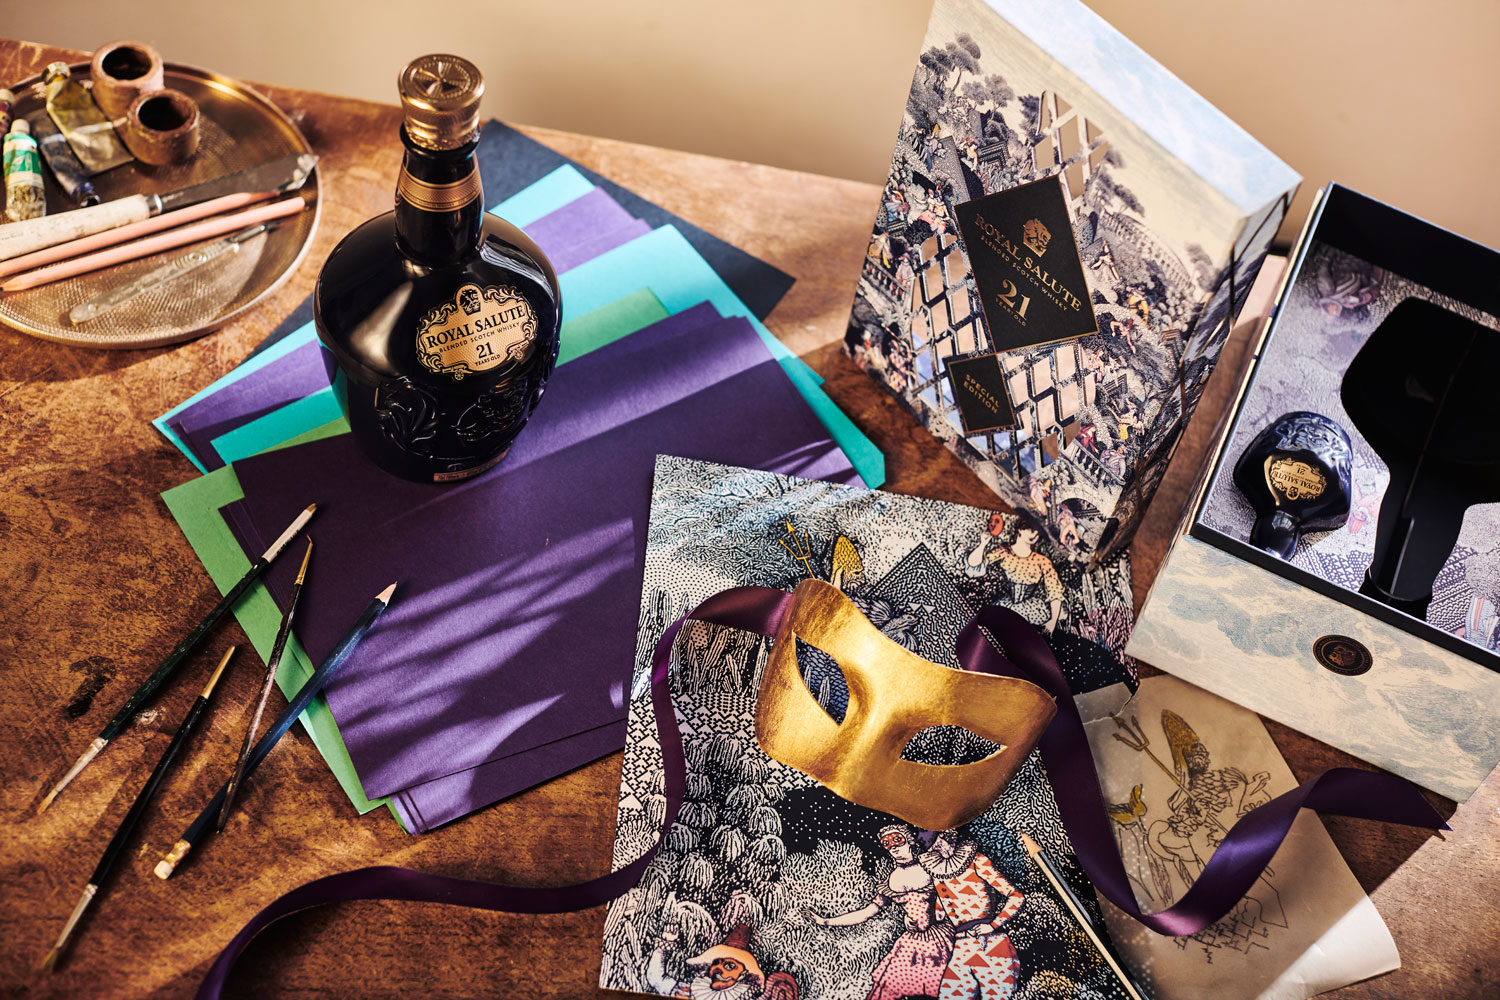 Royal Salute Unveils Masquerade Ball Gift Pack For The Festive Season 6